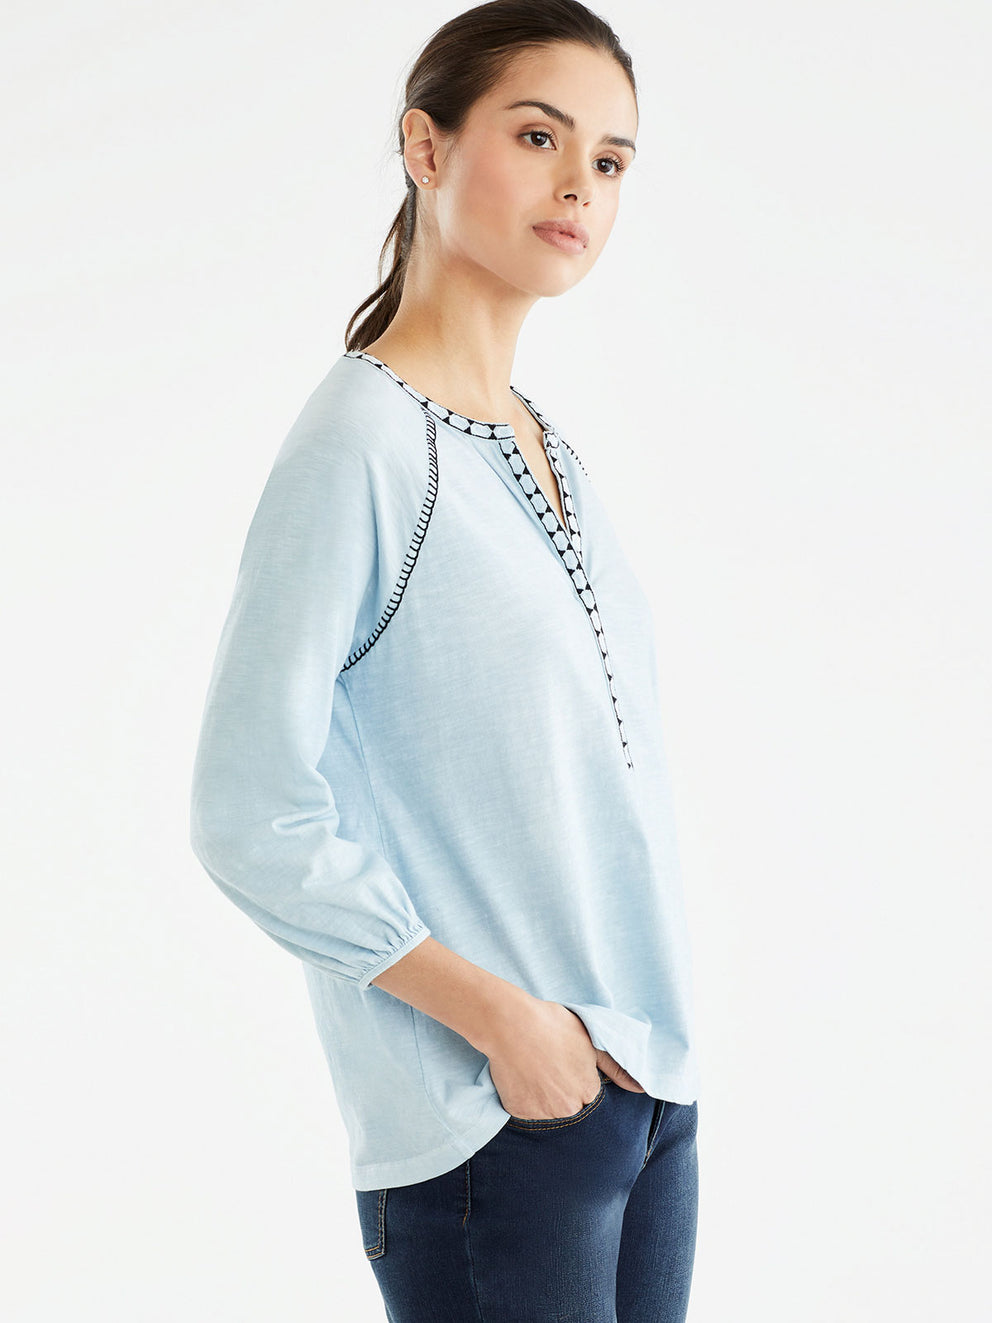 The Jones New York Embroidered Trim Tunic in color Pale Ocean - Image Position 2